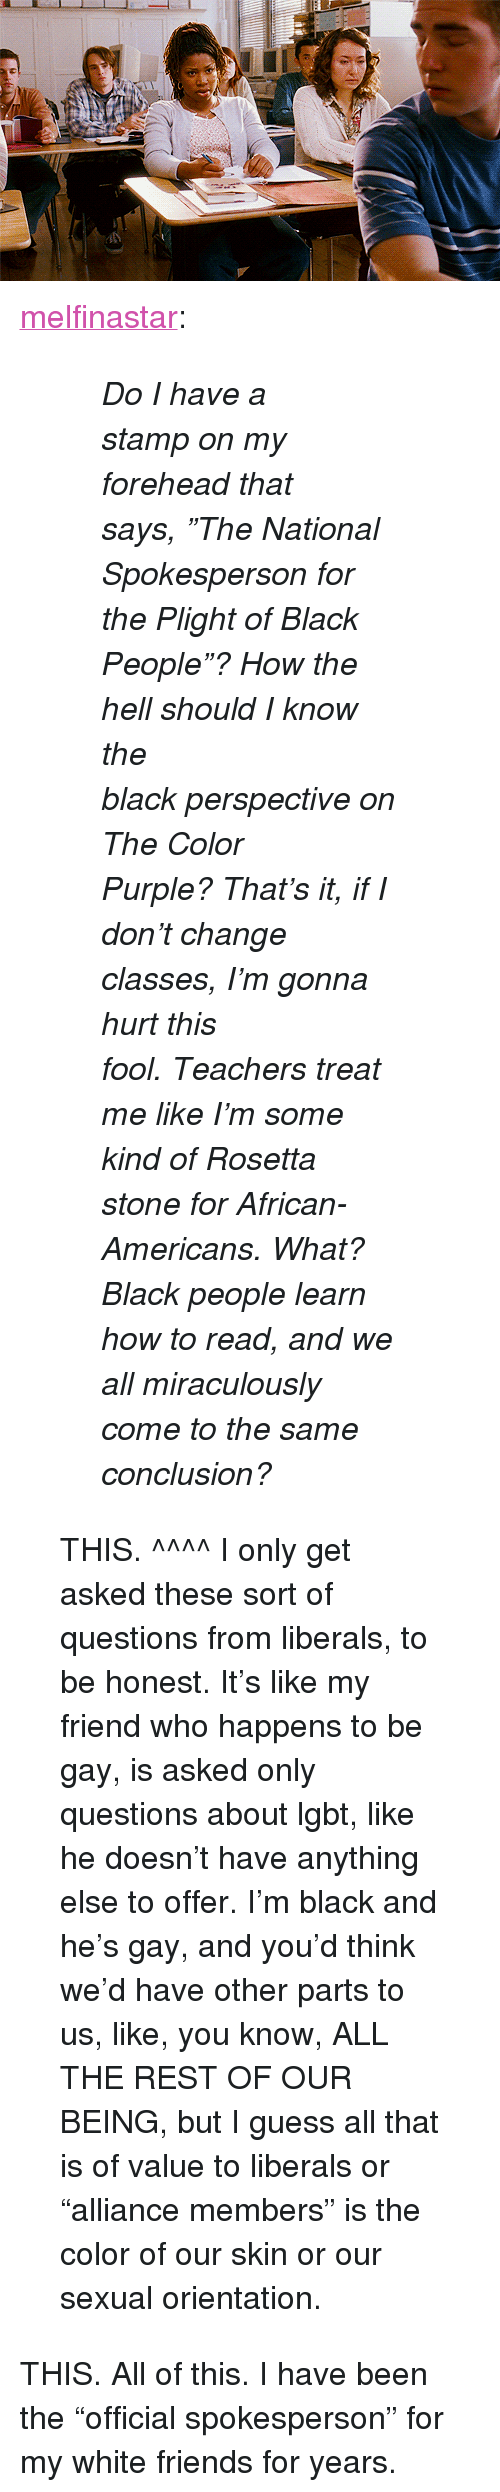 """What Black People: <p><a class=""""tumblr_blog"""" href=""""http://melfinastar.tumblr.com/post/33432538457/do-i-have-a-stamp-on-my-forehead-that-says-the"""">melfinastar</a>:</p> <blockquote> <blockquote> <p><em><span>Do I have a stampon my forehead that says,""""The National Spokespersonfor the Plight of Black People""""?How the hell should I know the blackperspective on The Color Purple?That's it, if I don't change classes,I'm gonna hurt this fool.Teachers treat me likeI'm some kind of Rosetta stonefor African-Americans.What? Black people learn how to read,and we all miraculously cometo the same conclusion?</span></em></p> </blockquote> <p>THIS. ^^^^ I only get asked these sort of questions from liberals, to be honest. It's like my friend who happens to be gay, is asked only questions about lgbt, like he doesn't have anything else to offer. I'm black and he's gay, and you'd think we'd have other parts to us, like, you know, ALL THE REST OF OUR BEING, but I guess all that is of value to liberals or """"alliance members"""" is the color of our skin or our sexual orientation.</p> </blockquote> <p>THIS. All of this. I have been the &ldquo;official spokesperson&rdquo; for my white friends for years.</p>"""